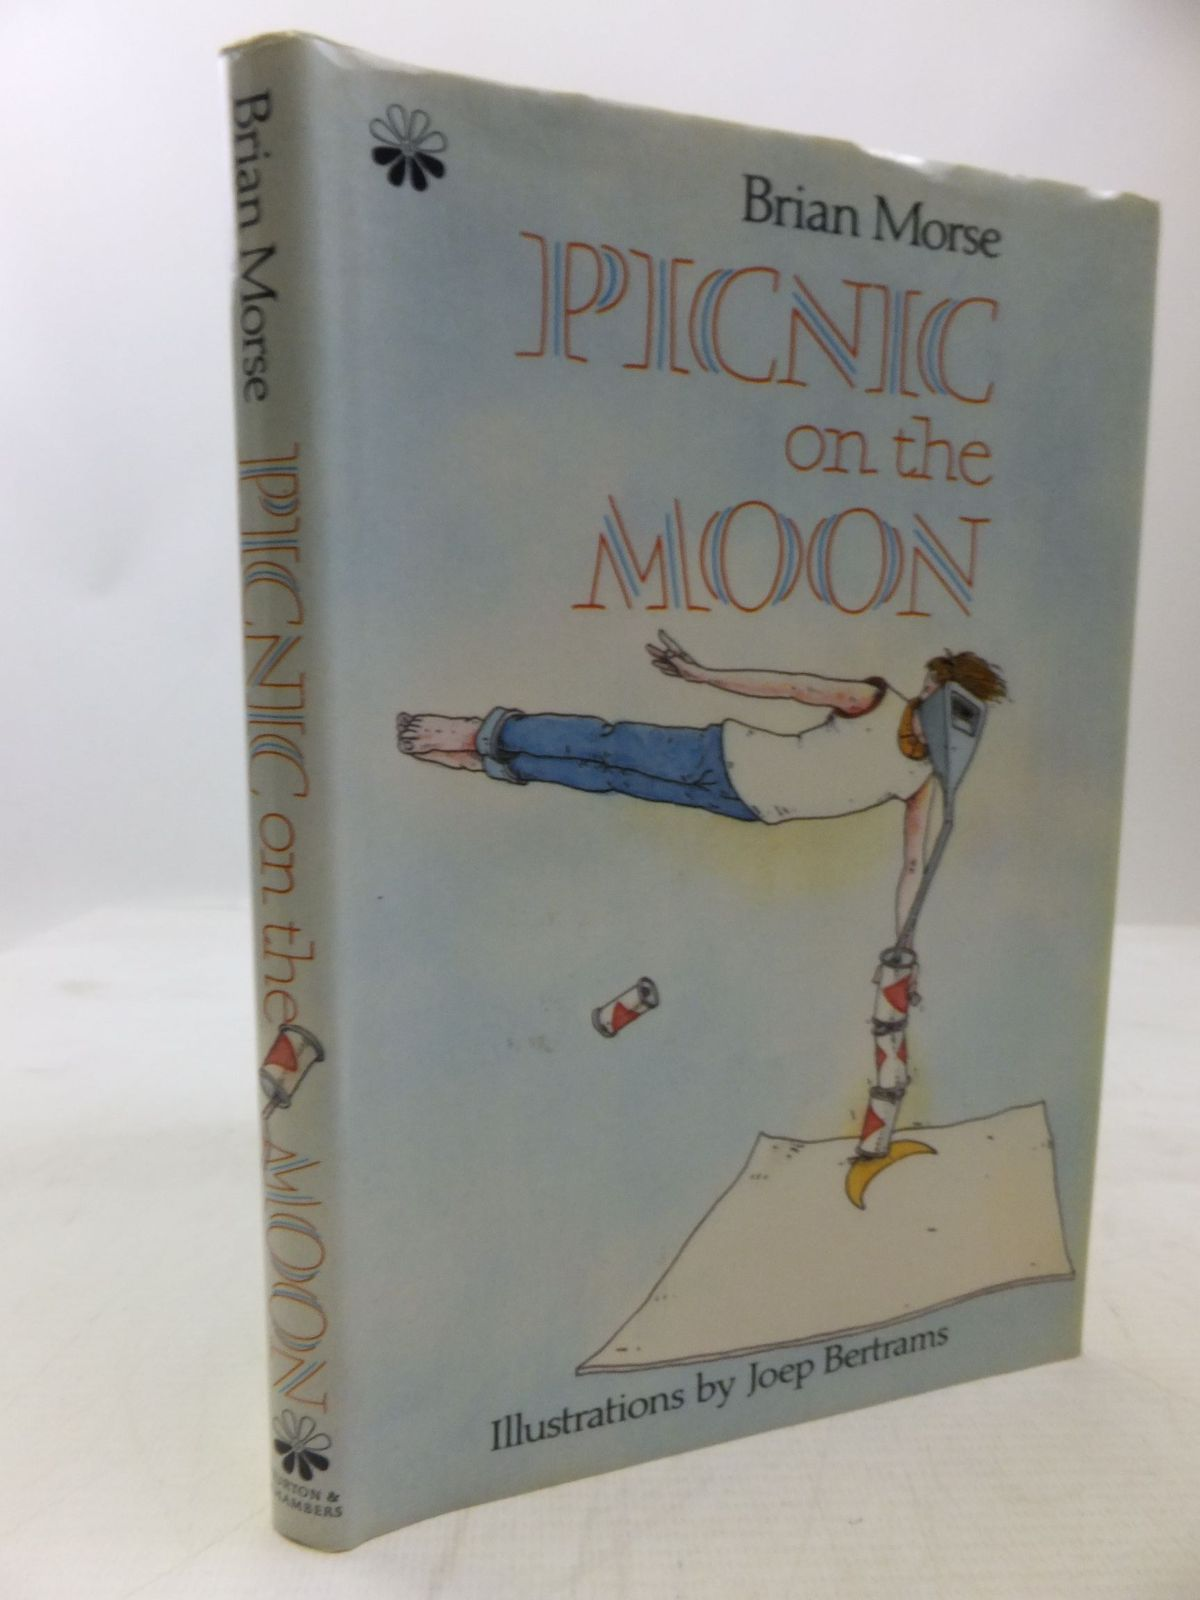 Photo of PICNIC ON THE MOON written by Morse, Brian illustrated by Bertrams, Joep published by Turton & Chambers (STOCK CODE: 2118461)  for sale by Stella & Rose's Books